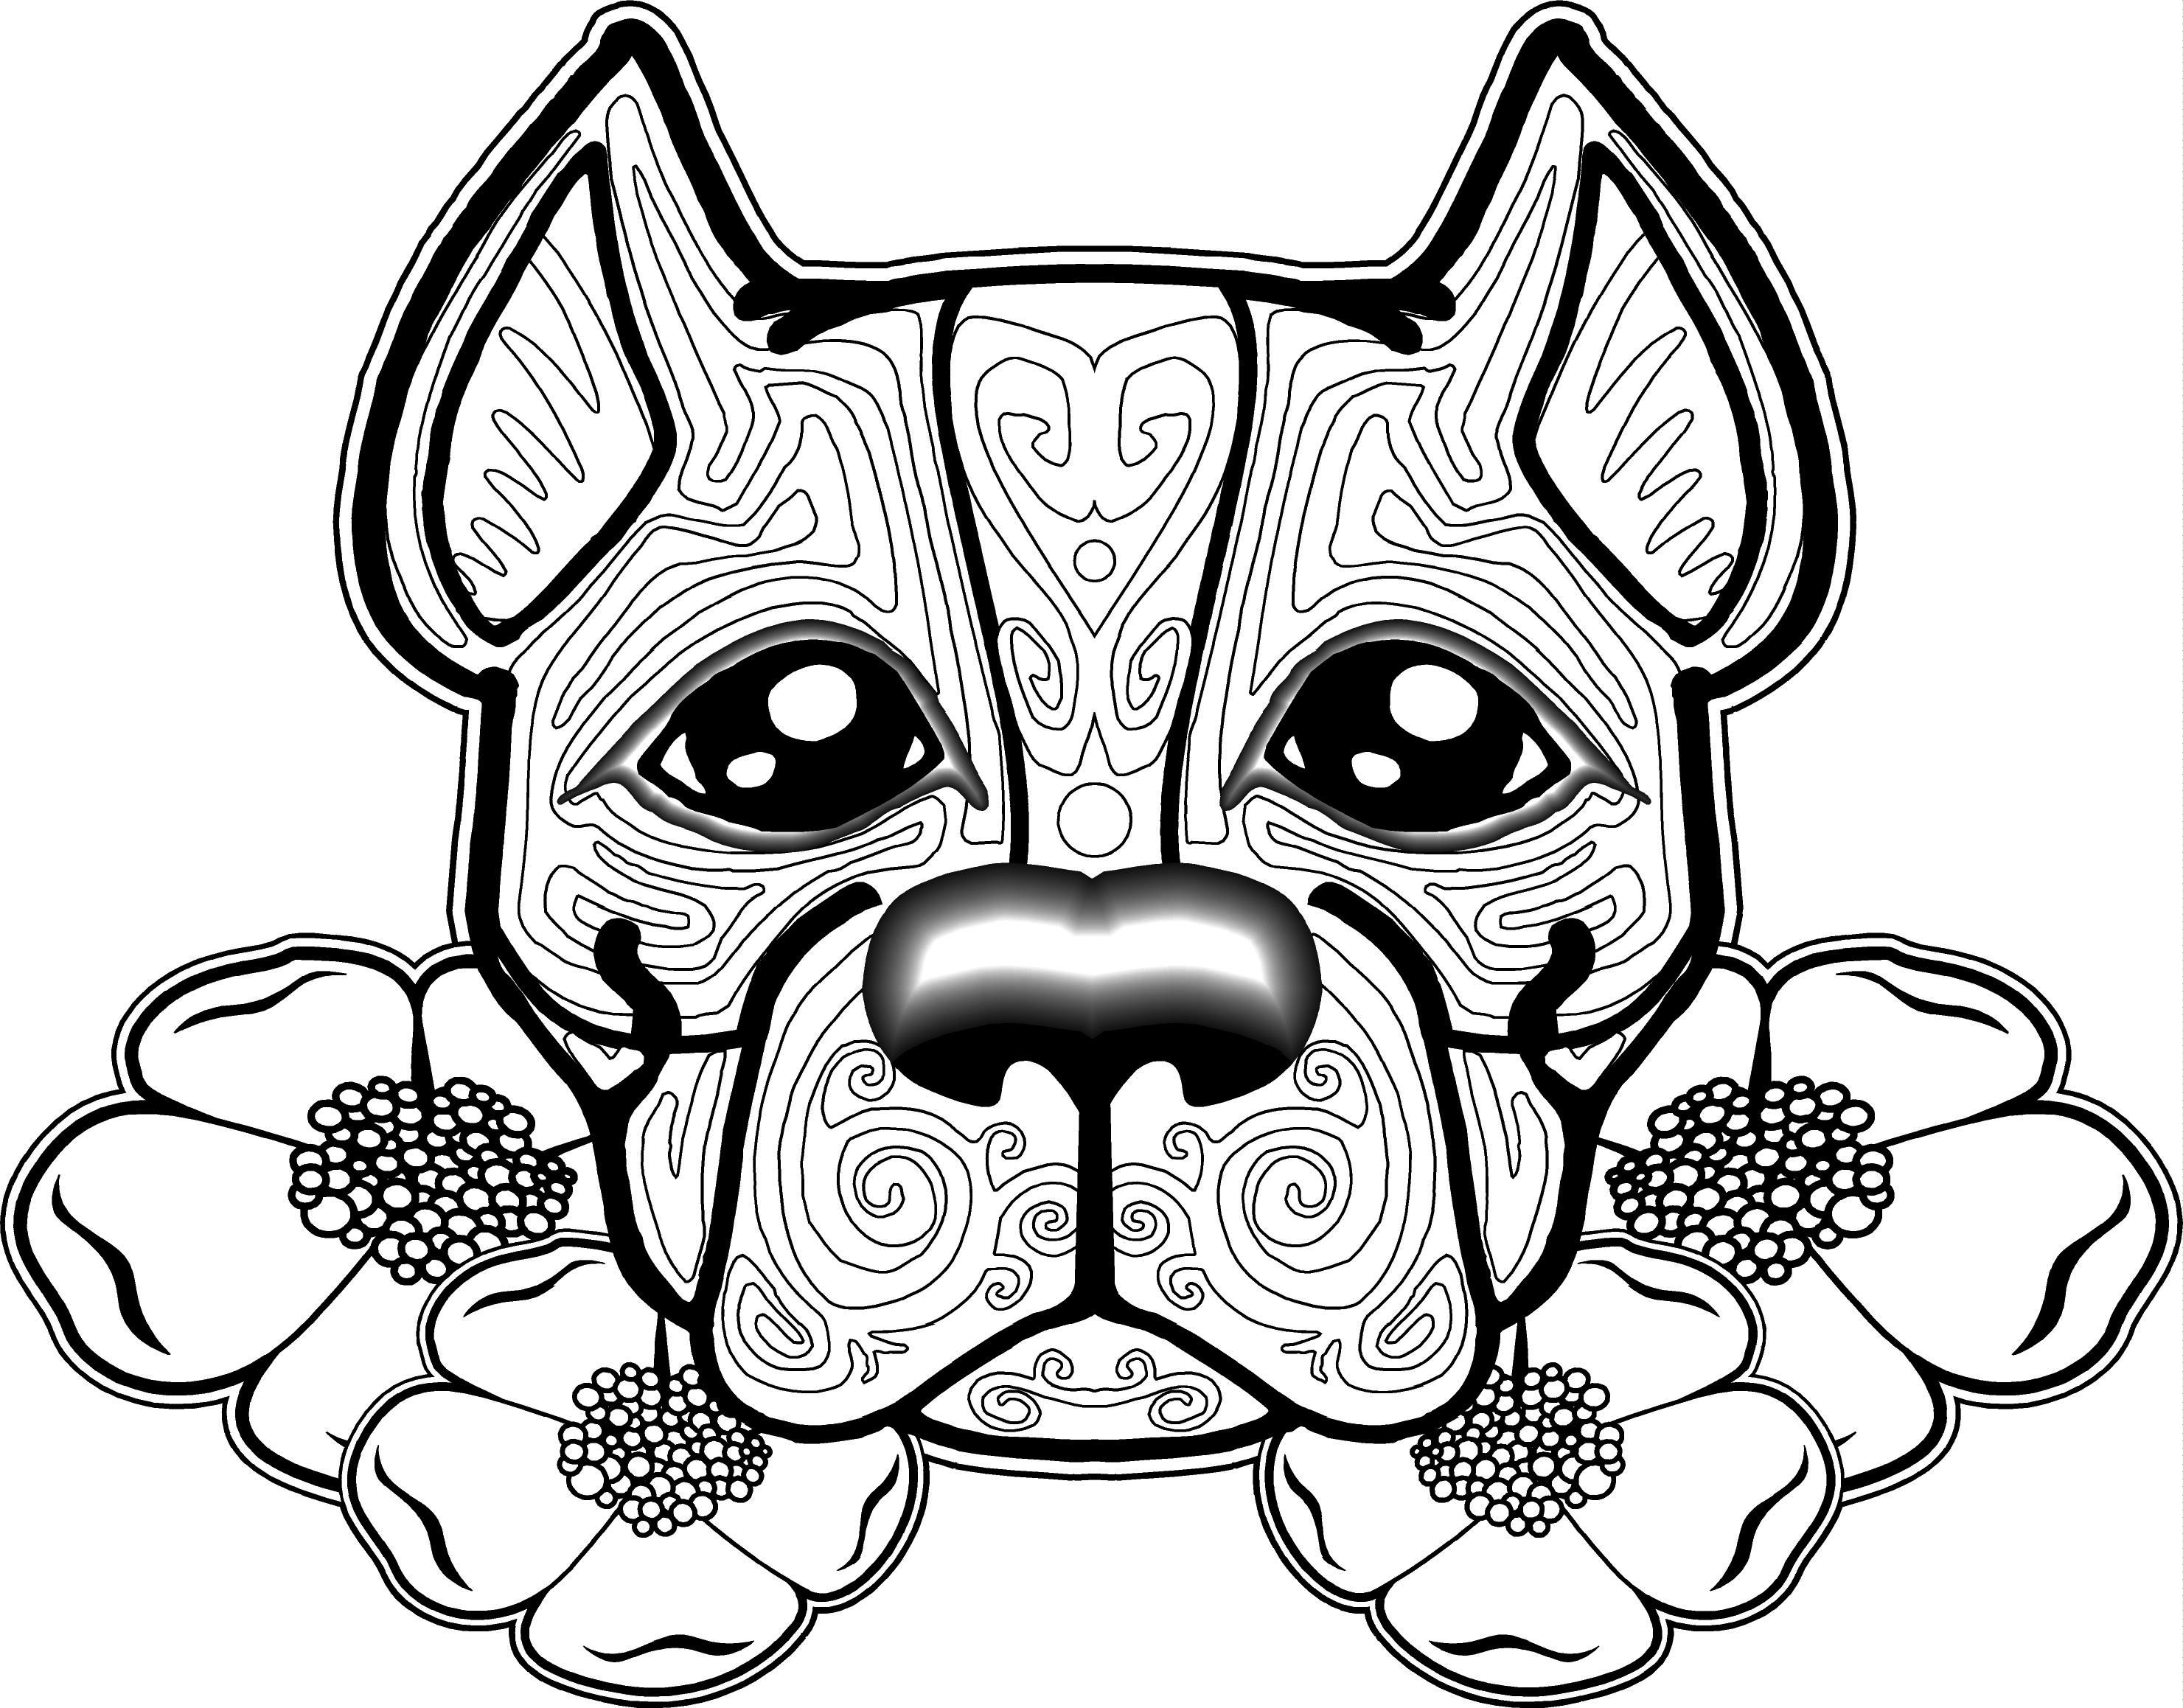 Free Dog Coloring Pages For Adults   Free Printable Coloring Pages - Colouring Pages Dogs Free Printable